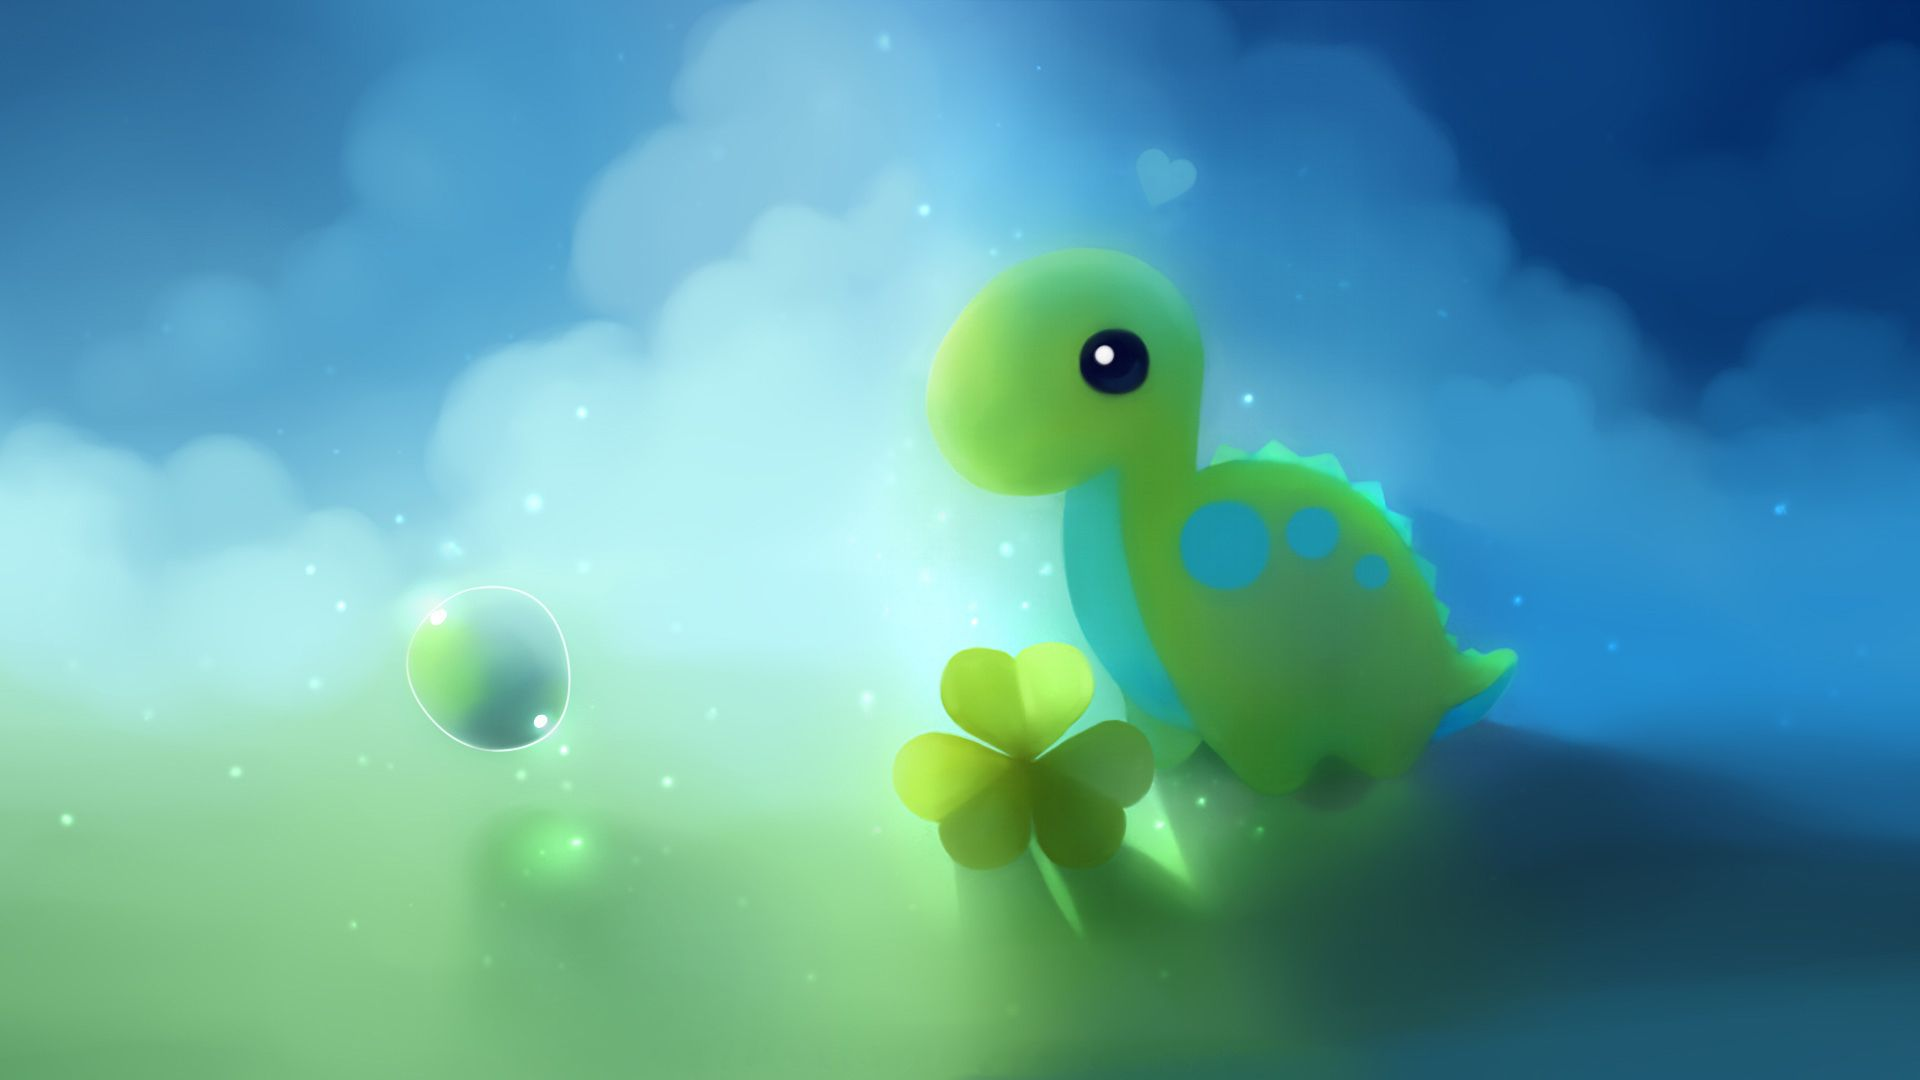 httpapofiss deviantart comartbronto dino a· cute wallpaperscute desktop